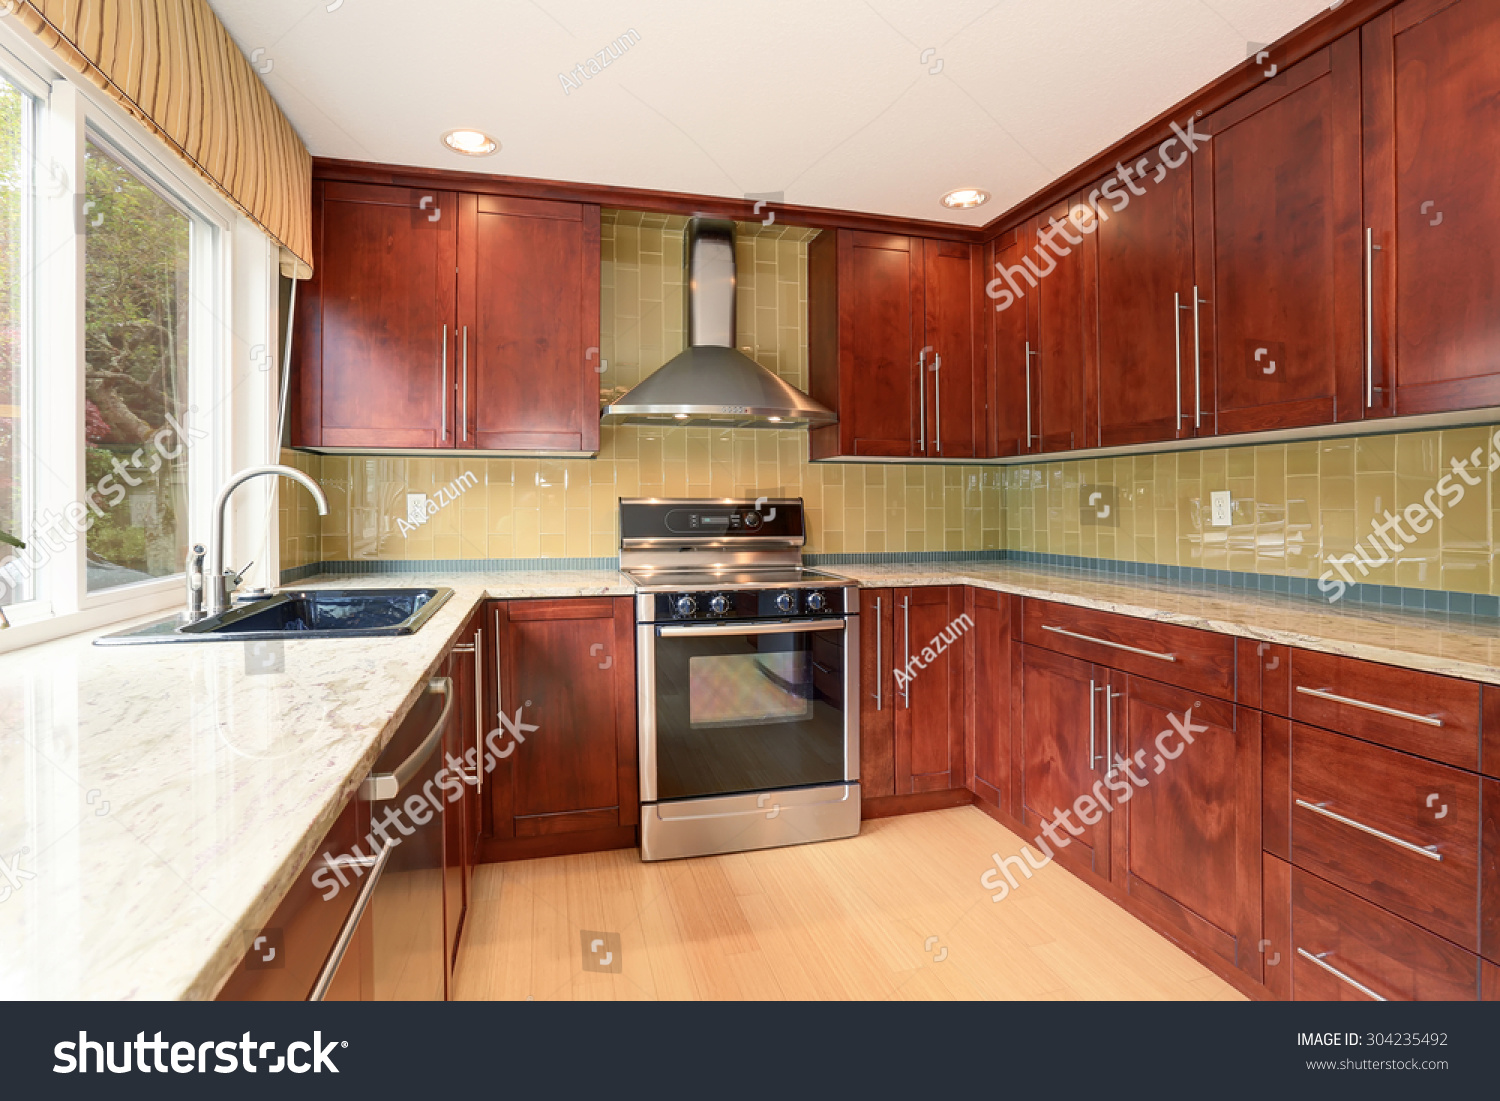 Clean style kitchen stained wood cabinets stock photo for Best product to clean wood kitchen cabinets